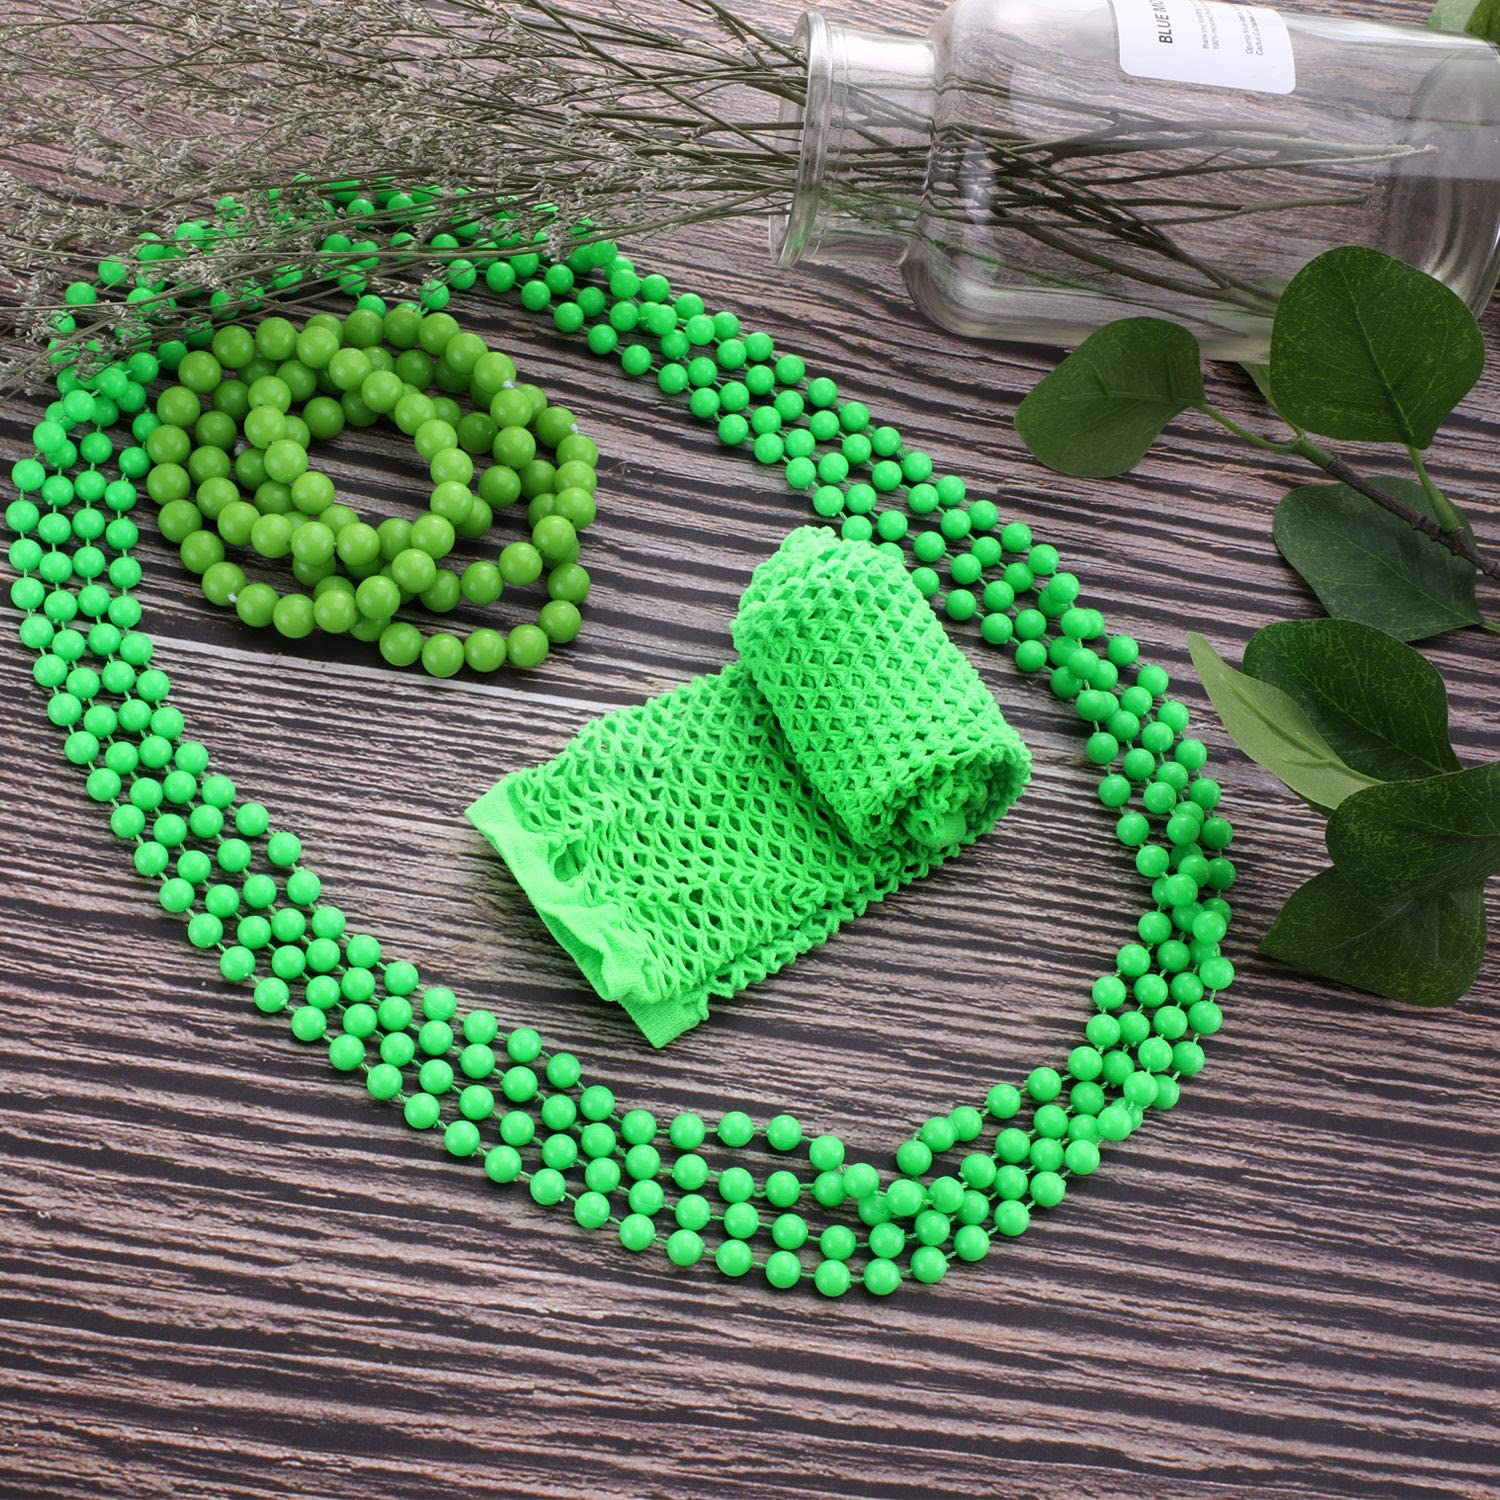 Green Glove Necklace Bracelet Set St 4 Pieces Green Bead Necklaces Patricks Day Party Costume Accessory 4 Pieces Green Bead Bracelets Including Green Gloves